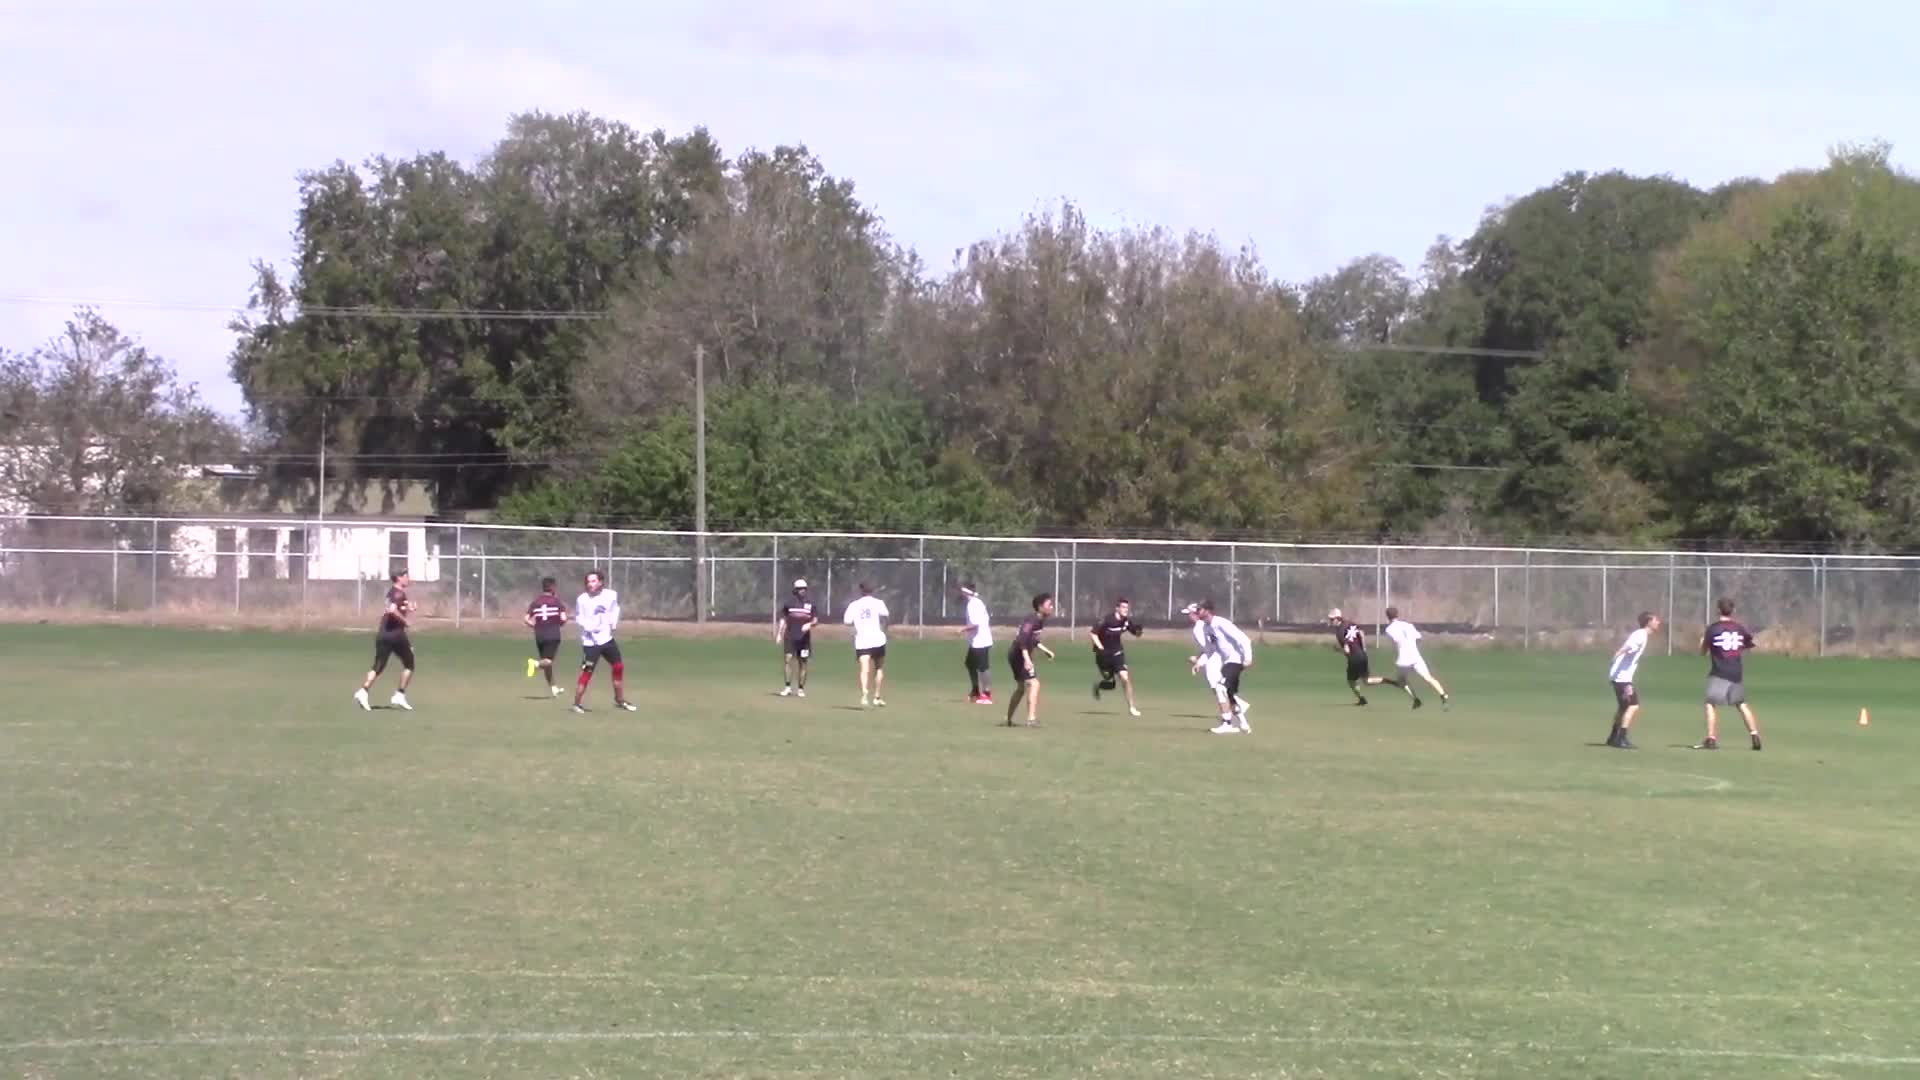 People & Blogs, South Carolina Gamecock Ultimate, soccer, Bad Colorado Cut D GIFs